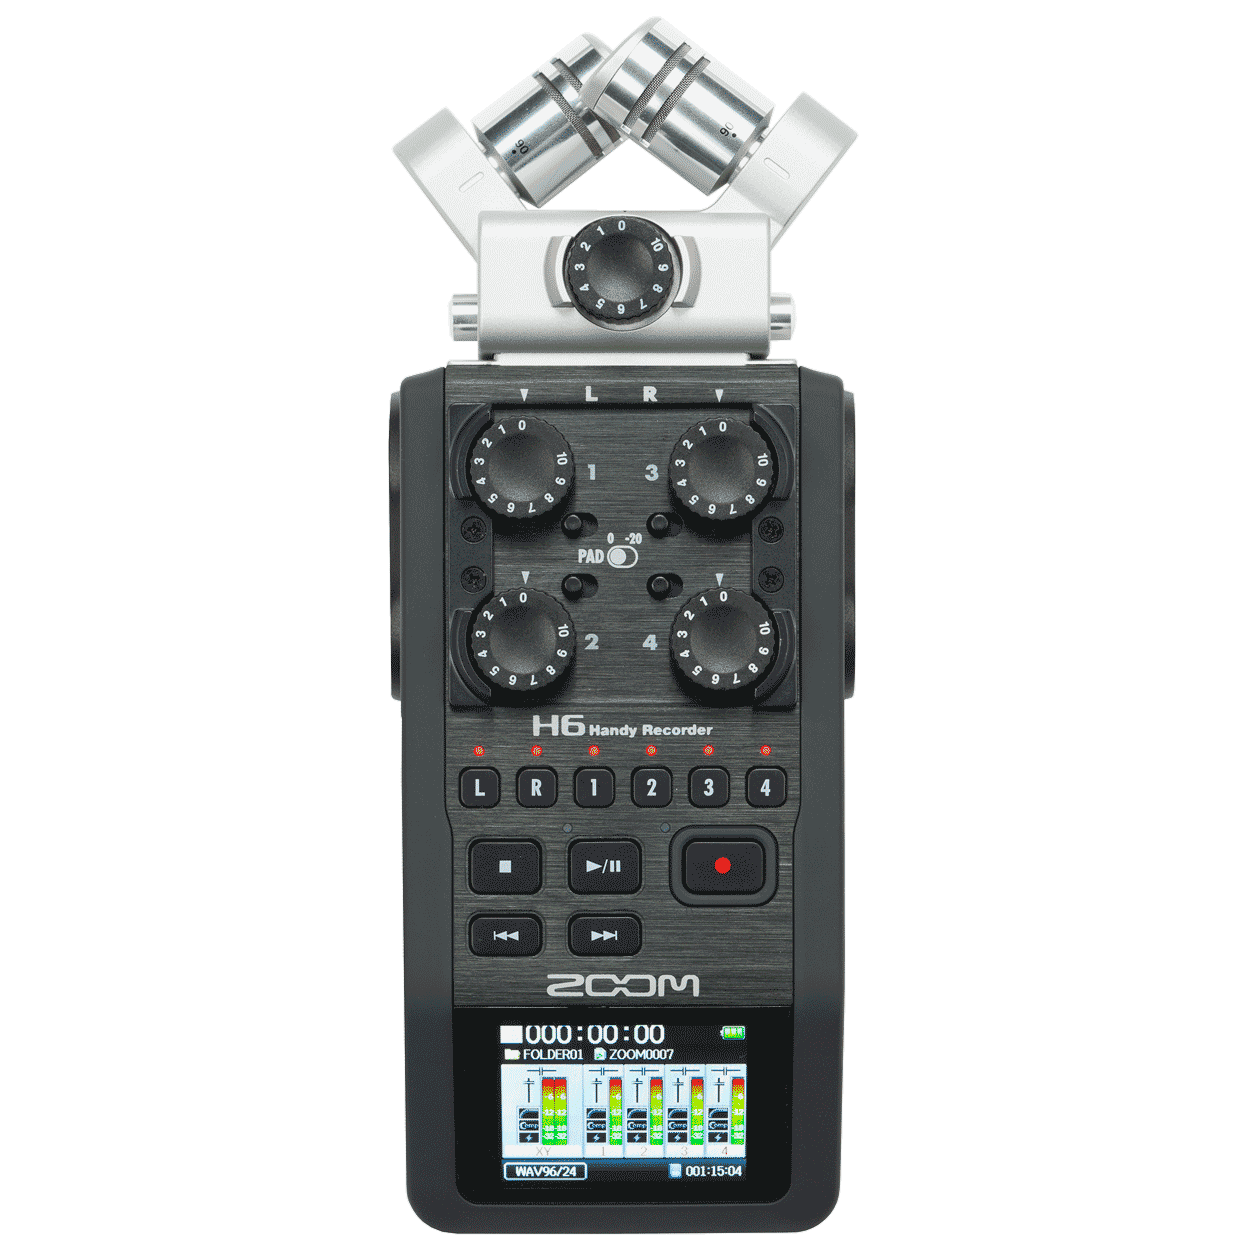 zoom_h6_audio_recorder.png